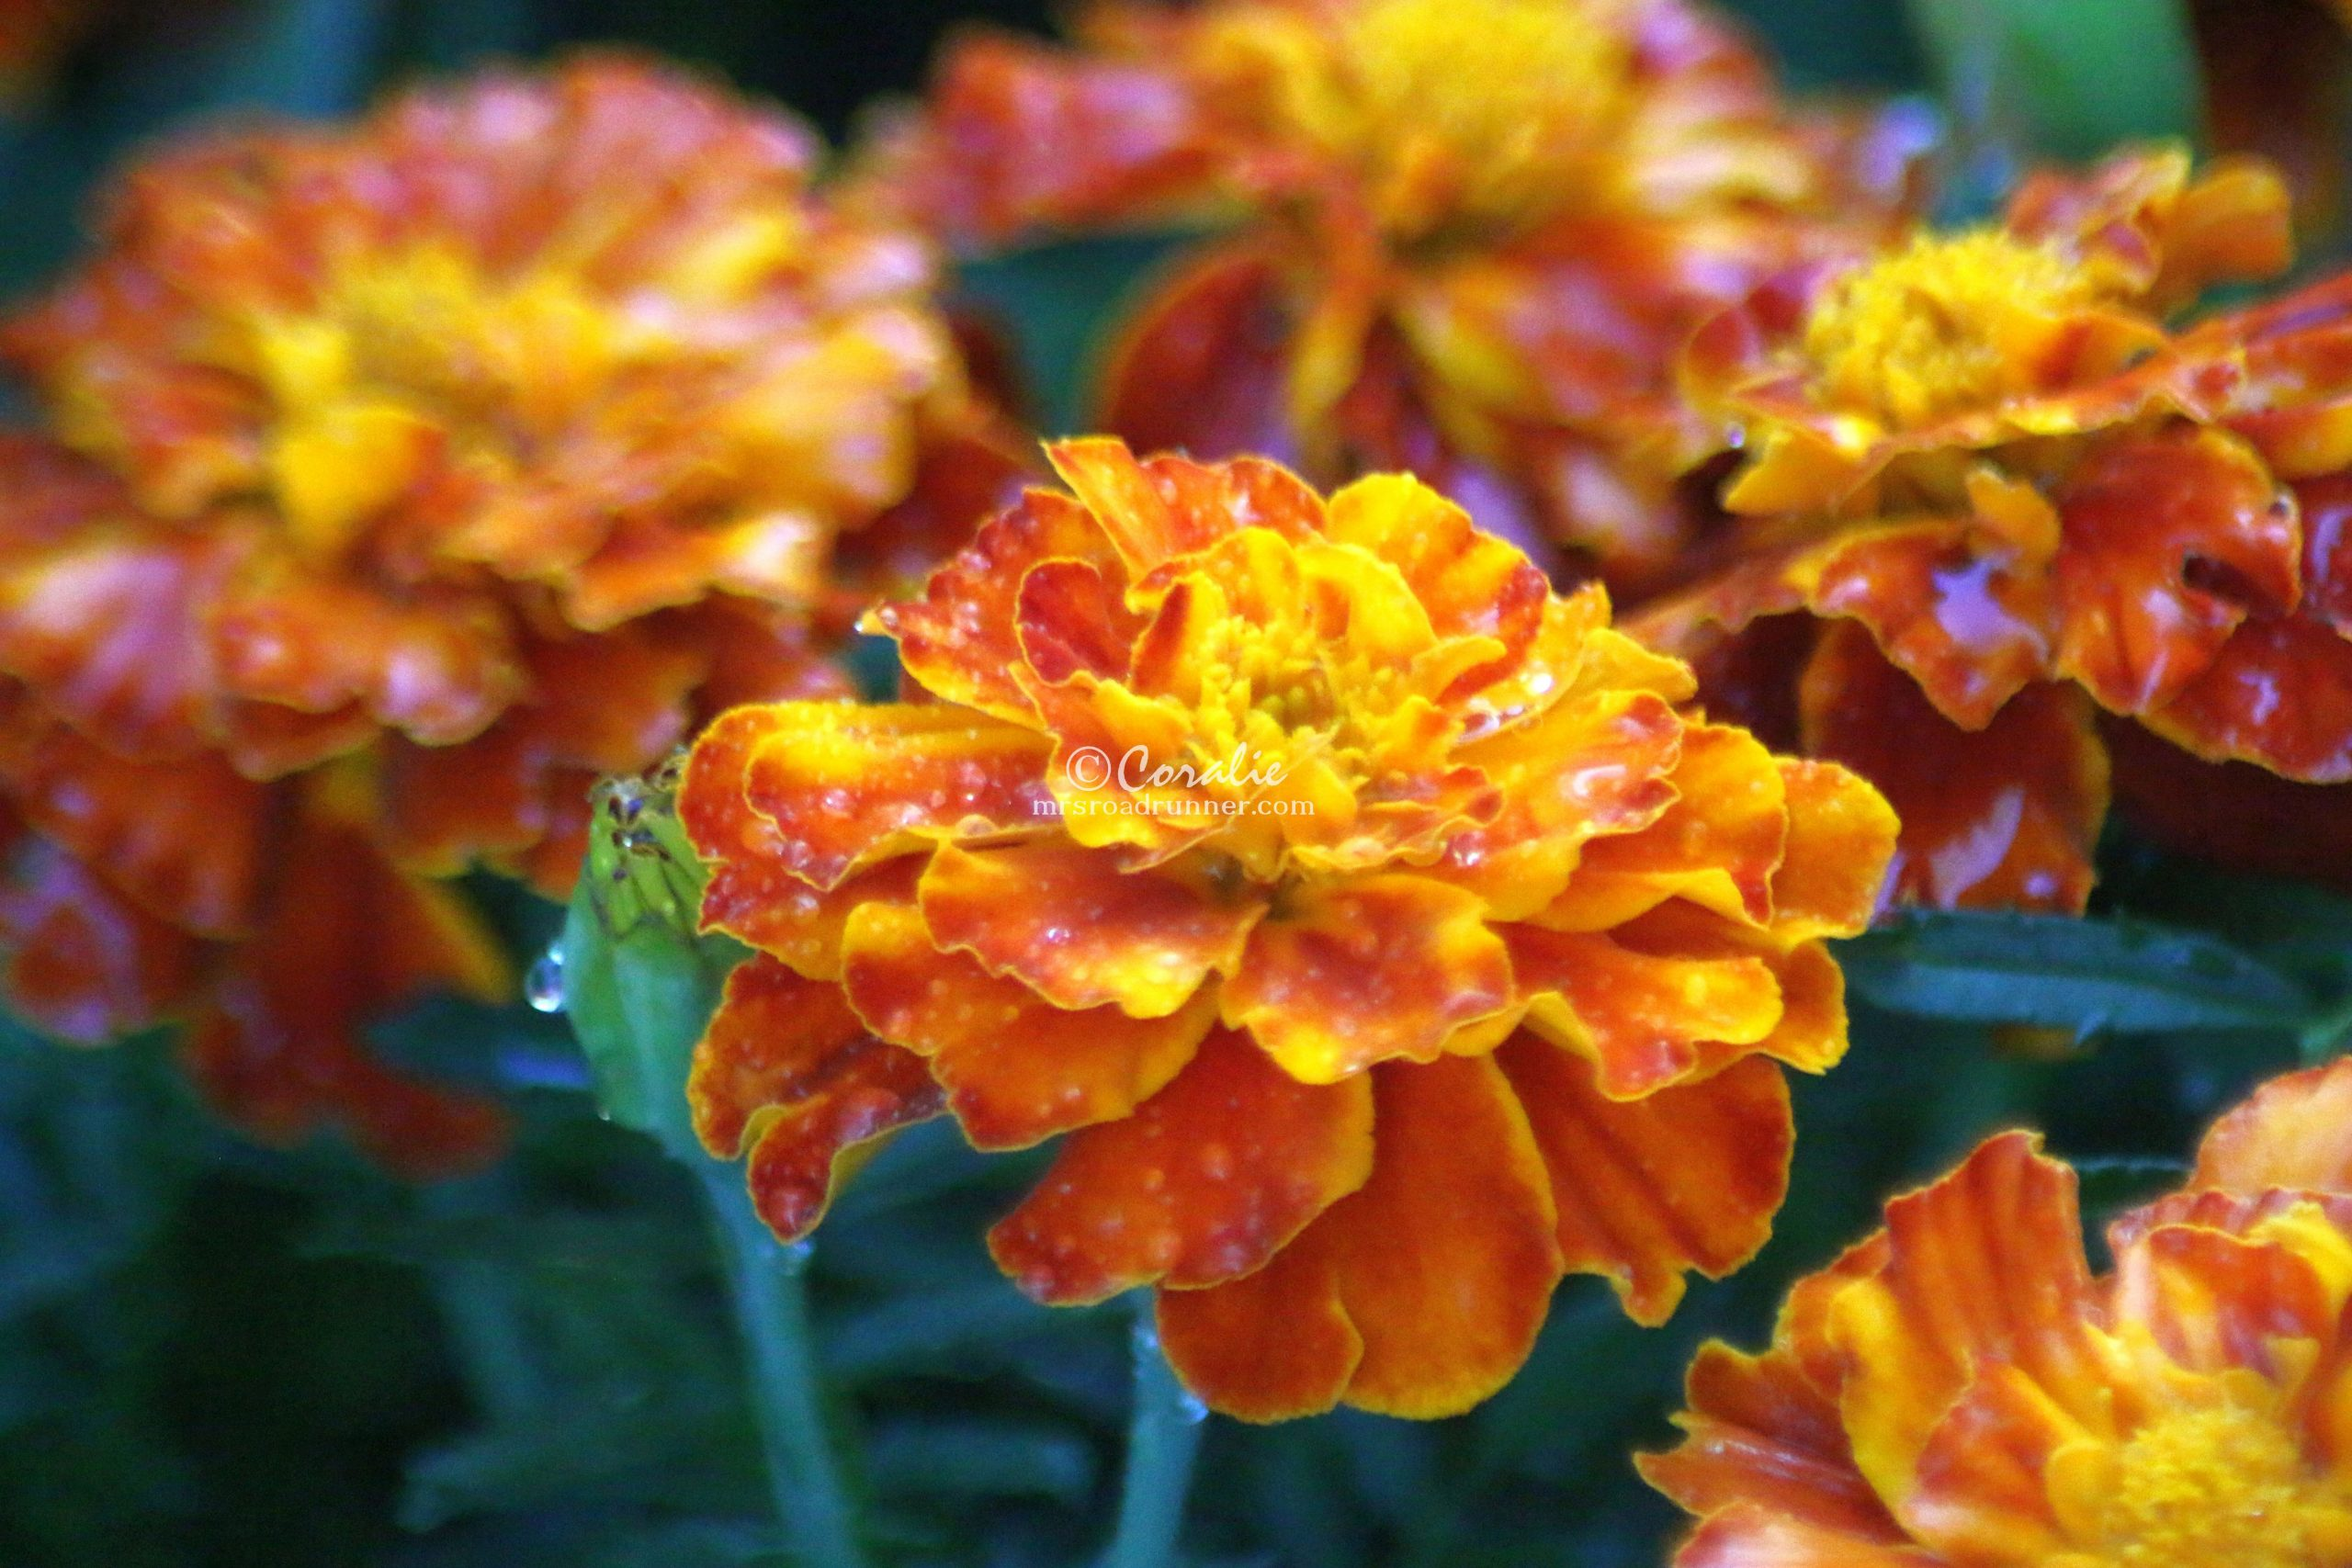 Marigold Flowers Blooming in Oregon